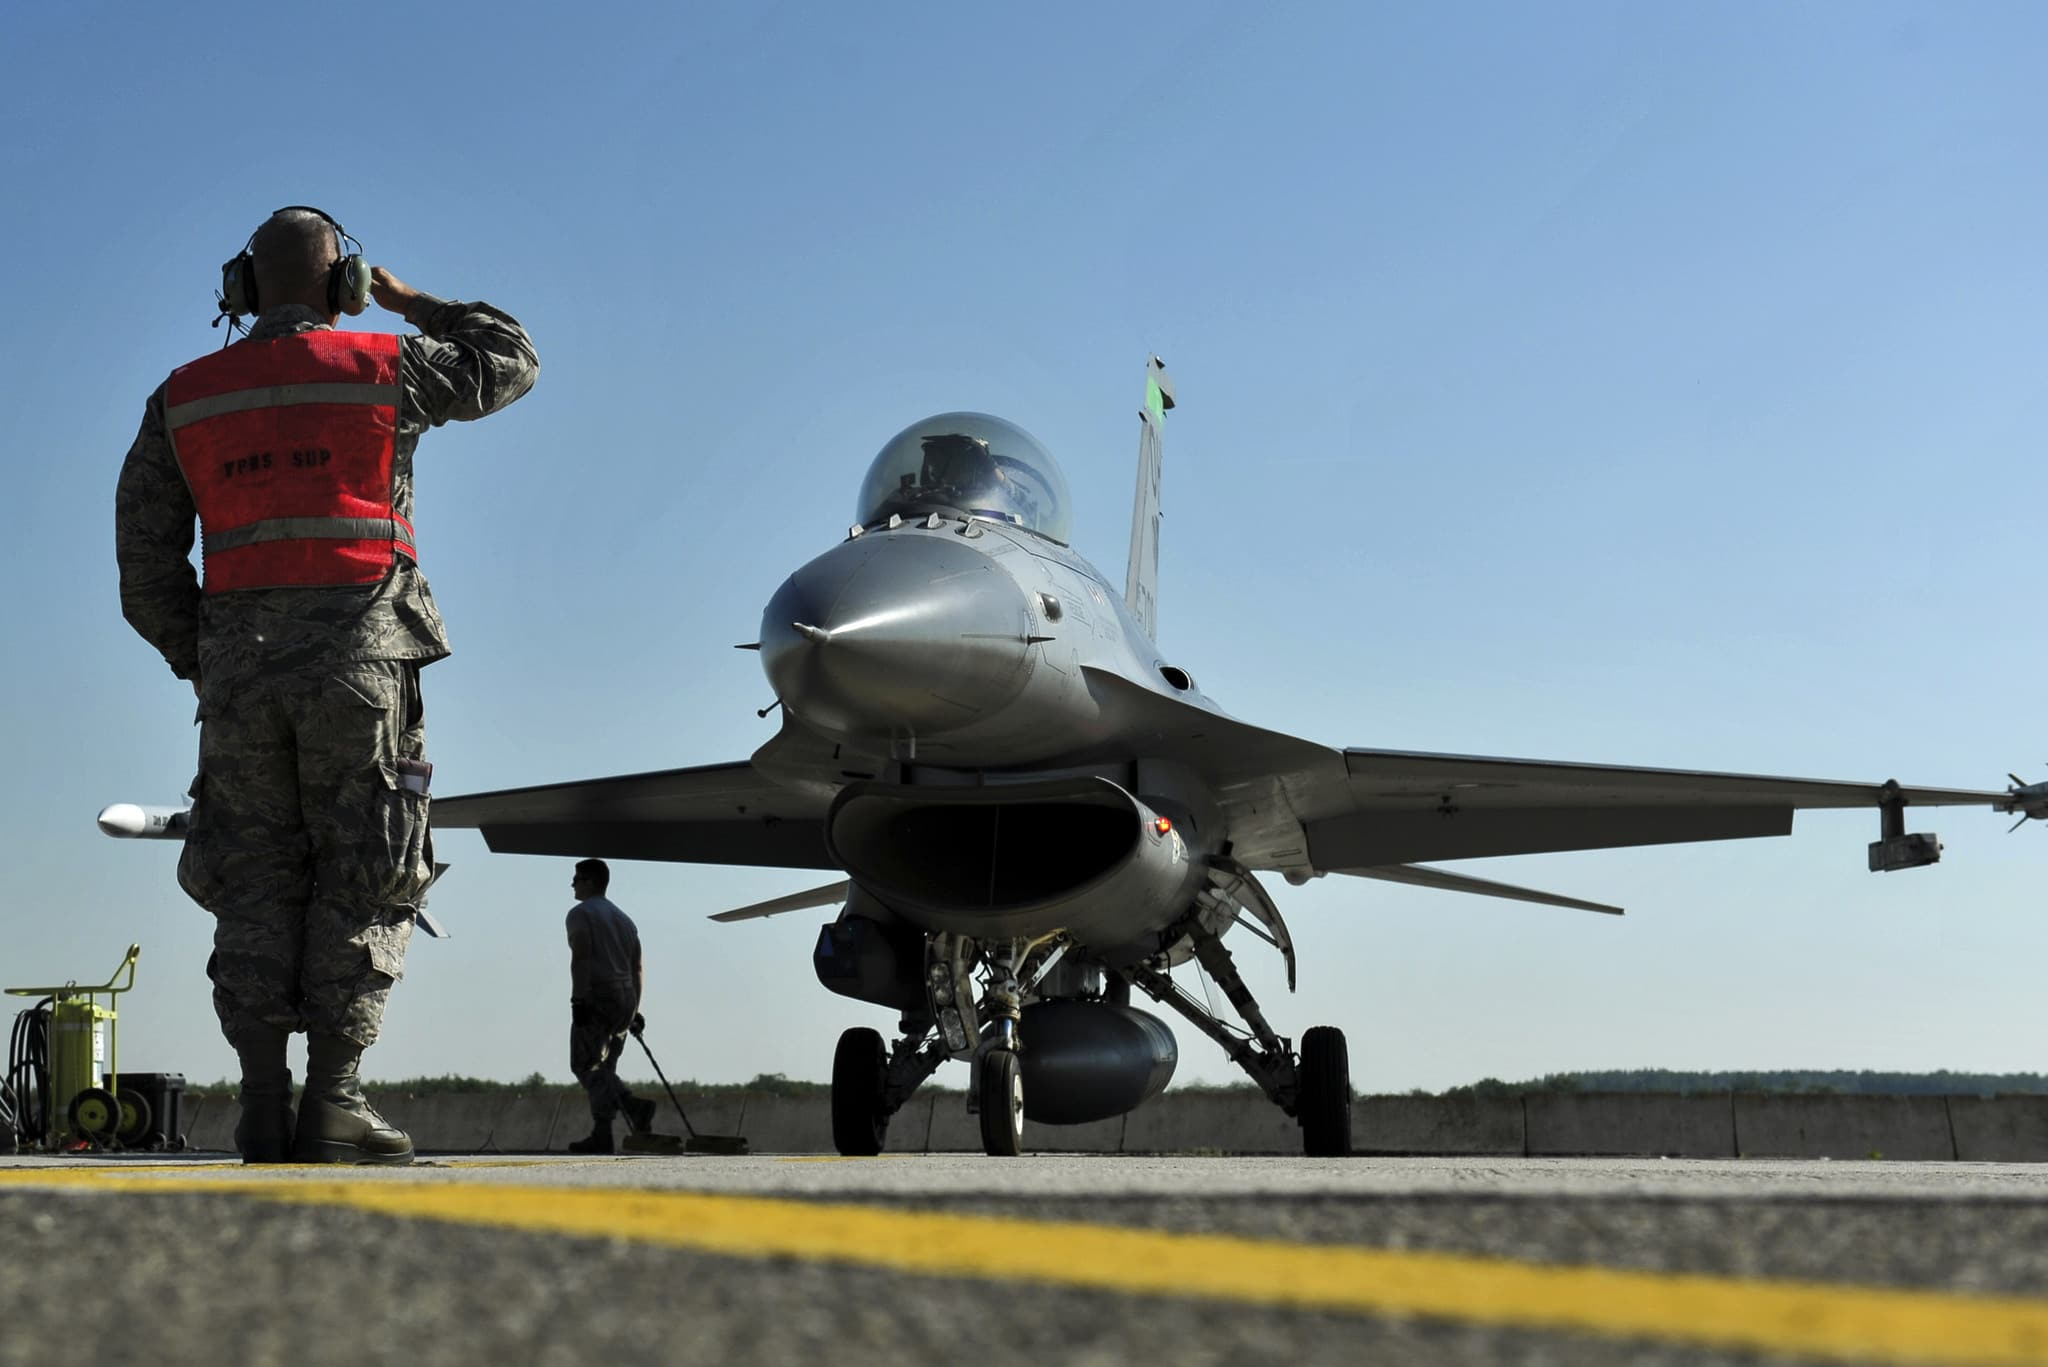 Master Sgt. Joe Ray, a weapons loader assigned to the 180th Fighter Wing, Ohio Air National Guard, salutes as Capt. Justin Kreischer, an 180th FW F-16 Fighting Falcon pilot, prepares to take off for a training sortie at Kecskemet Air Base, Hungary. Approximately 150 Airmen and eight F-16 fighter jets from the 180th FW traveled to the air base to participate in Load Diffuser 17, a two-week Hungarian-led multinational exercise focused on enhancing interoperability capabilities and skills among NATO allied and European partner air forces by conducting joint operations and air defenses to maintain joint readiness, while also bolstering relationships within the U.S. Air National Guard's State Partnership Program initiatives. Ohio became state partners with Hungary in 1993. (U.S. Air National Guard photo/Senior Master Sgt. Beth Holliker.)